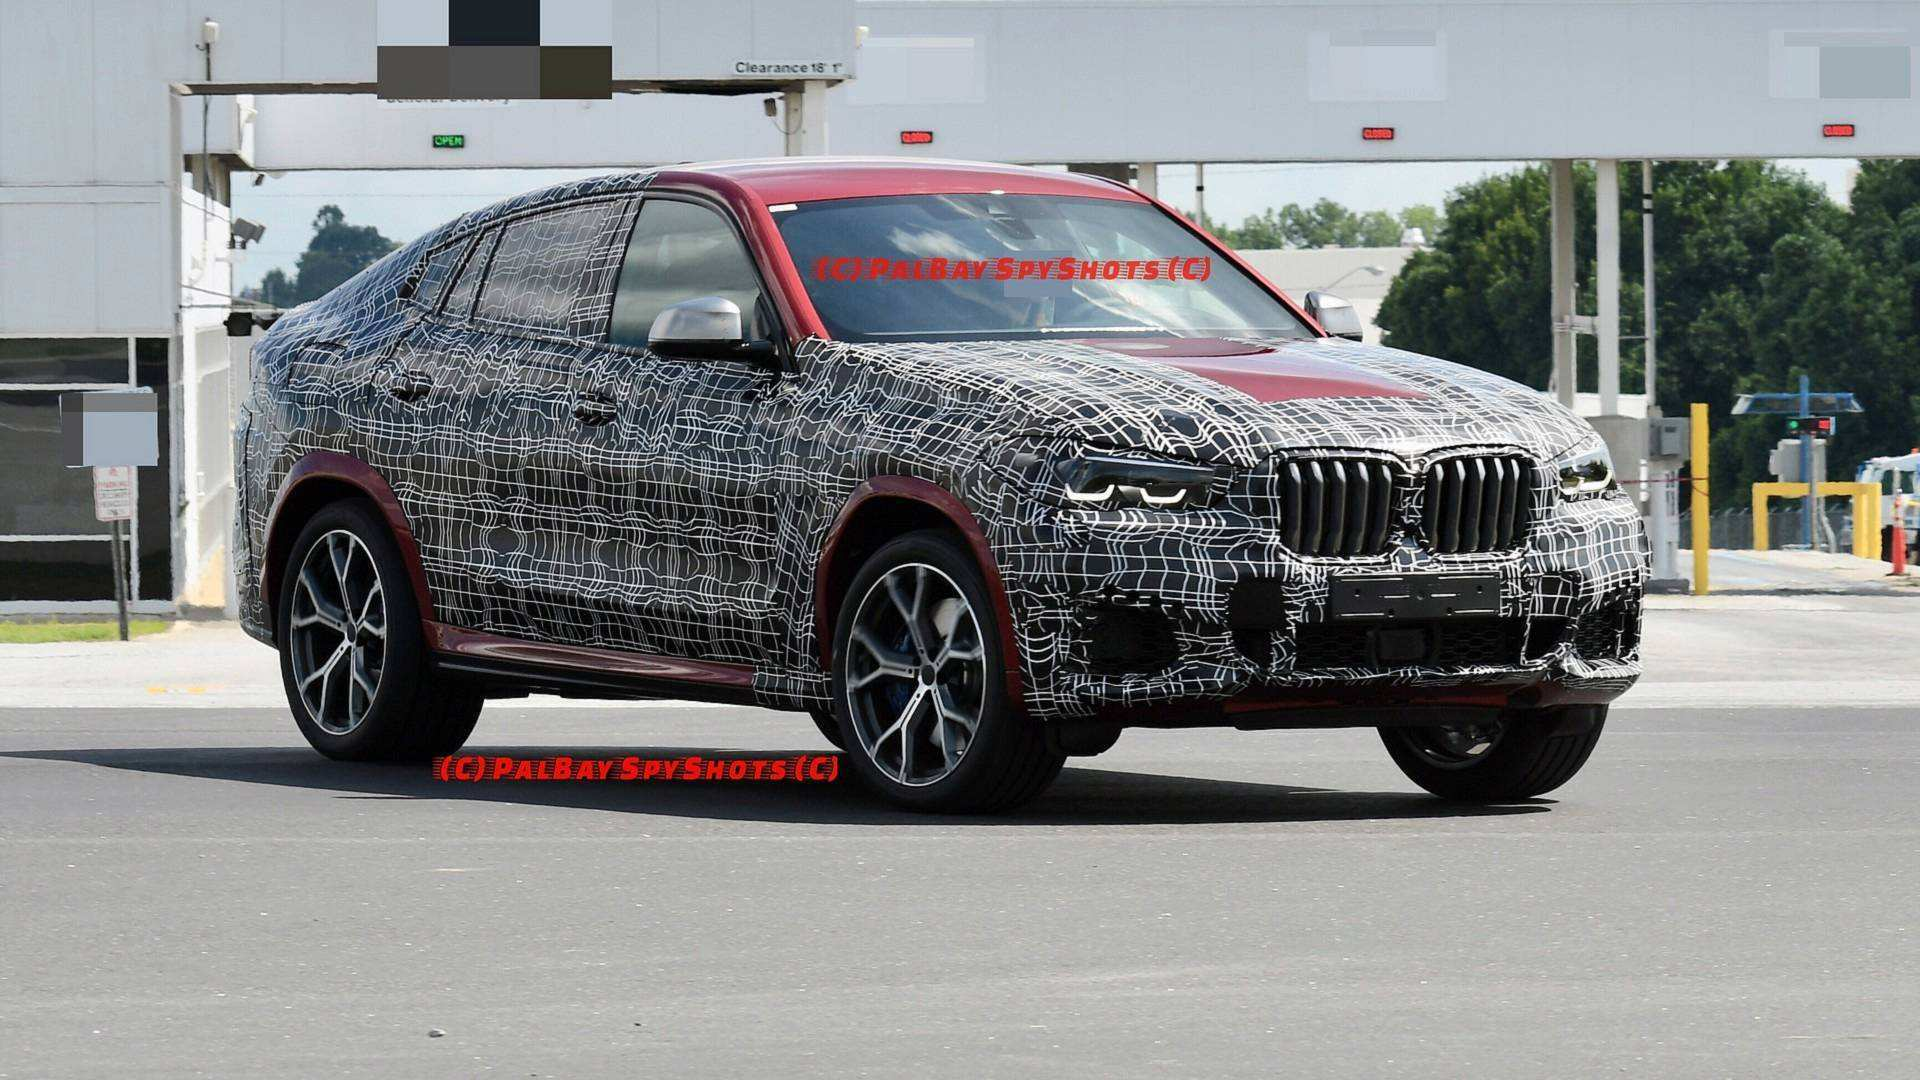 81 Concept of 2020 BMW X6 2020 Style with 2020 BMW X6 2020